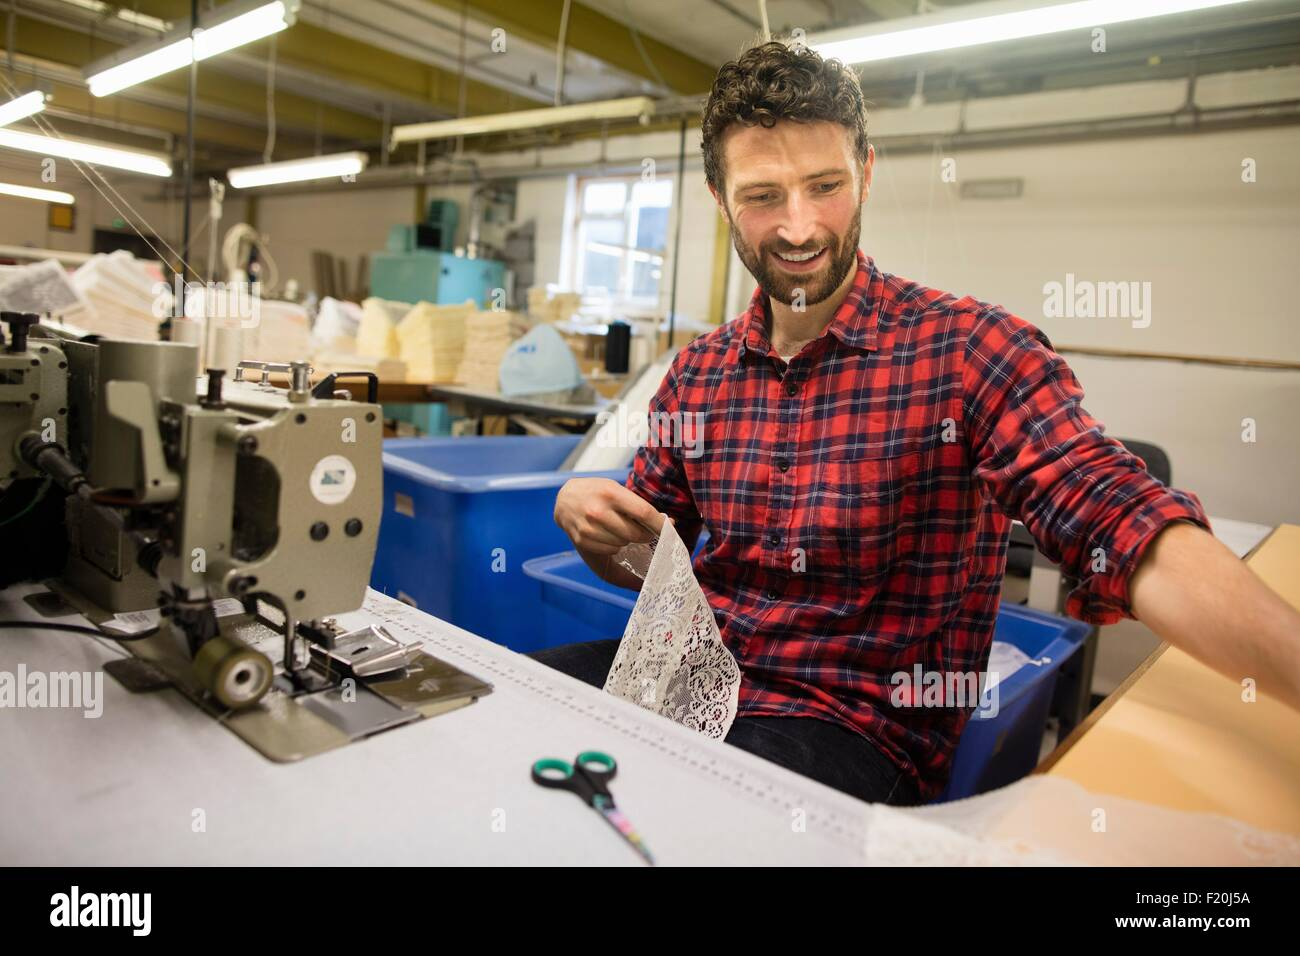 Male weaver finishing lace on sewing machine in old textile mill - Stock Image